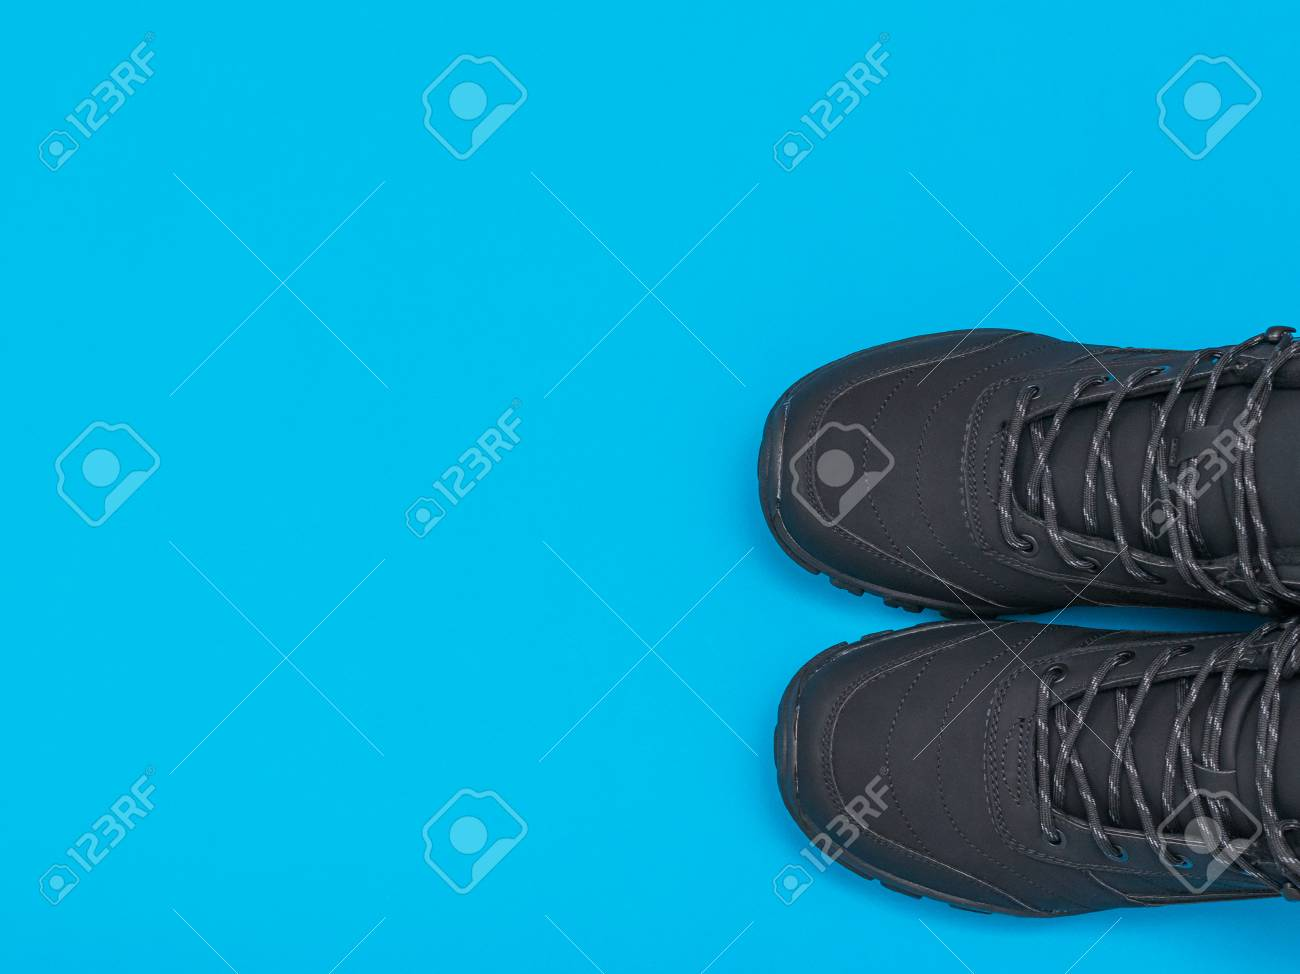 Insulated Black Casual Men's Shoes On